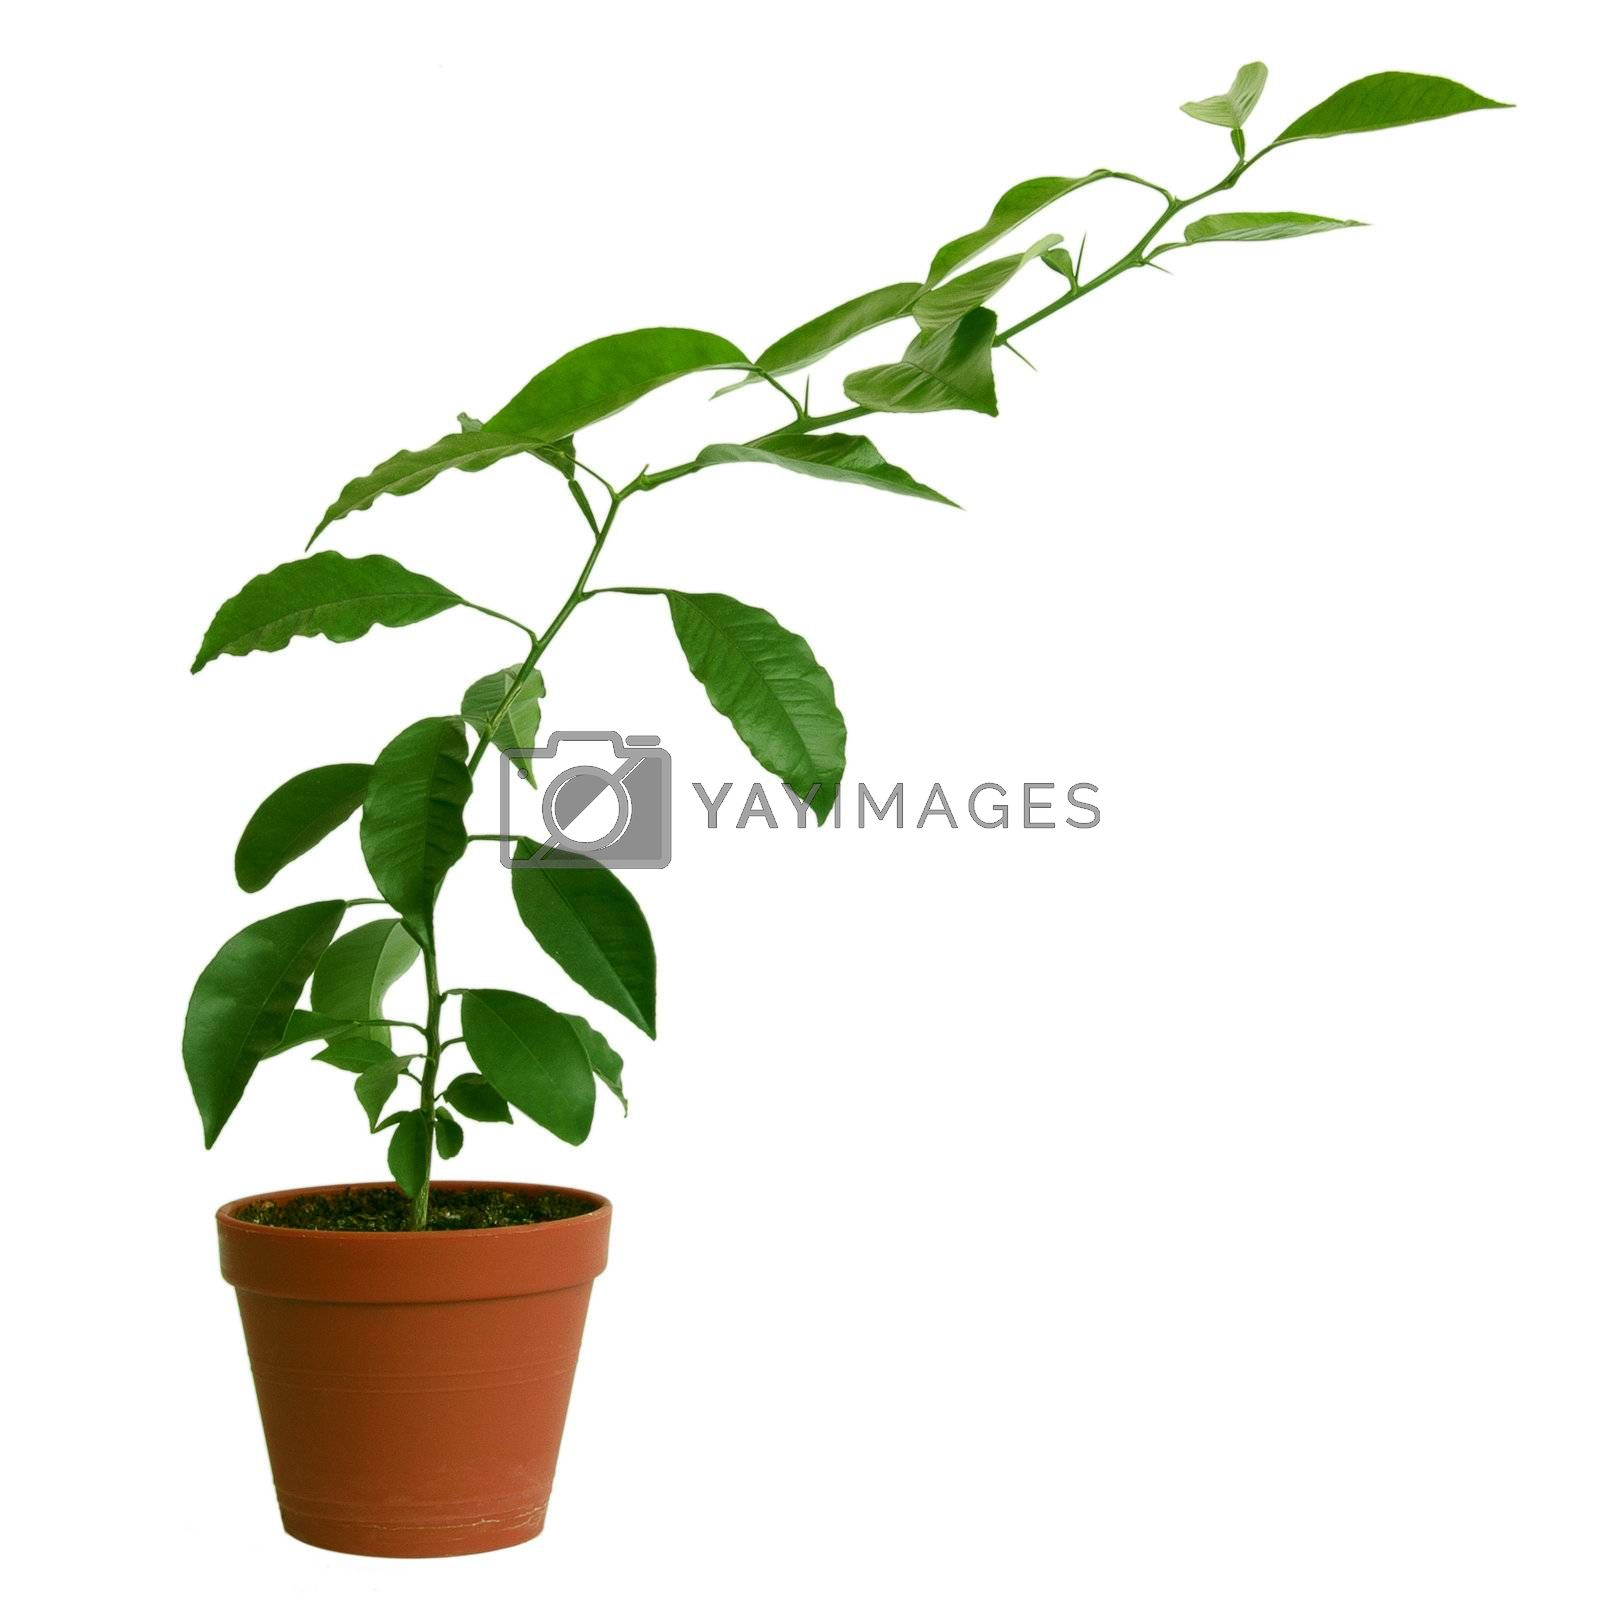 isolated green branch with leaves in a brown pot on a white background with path